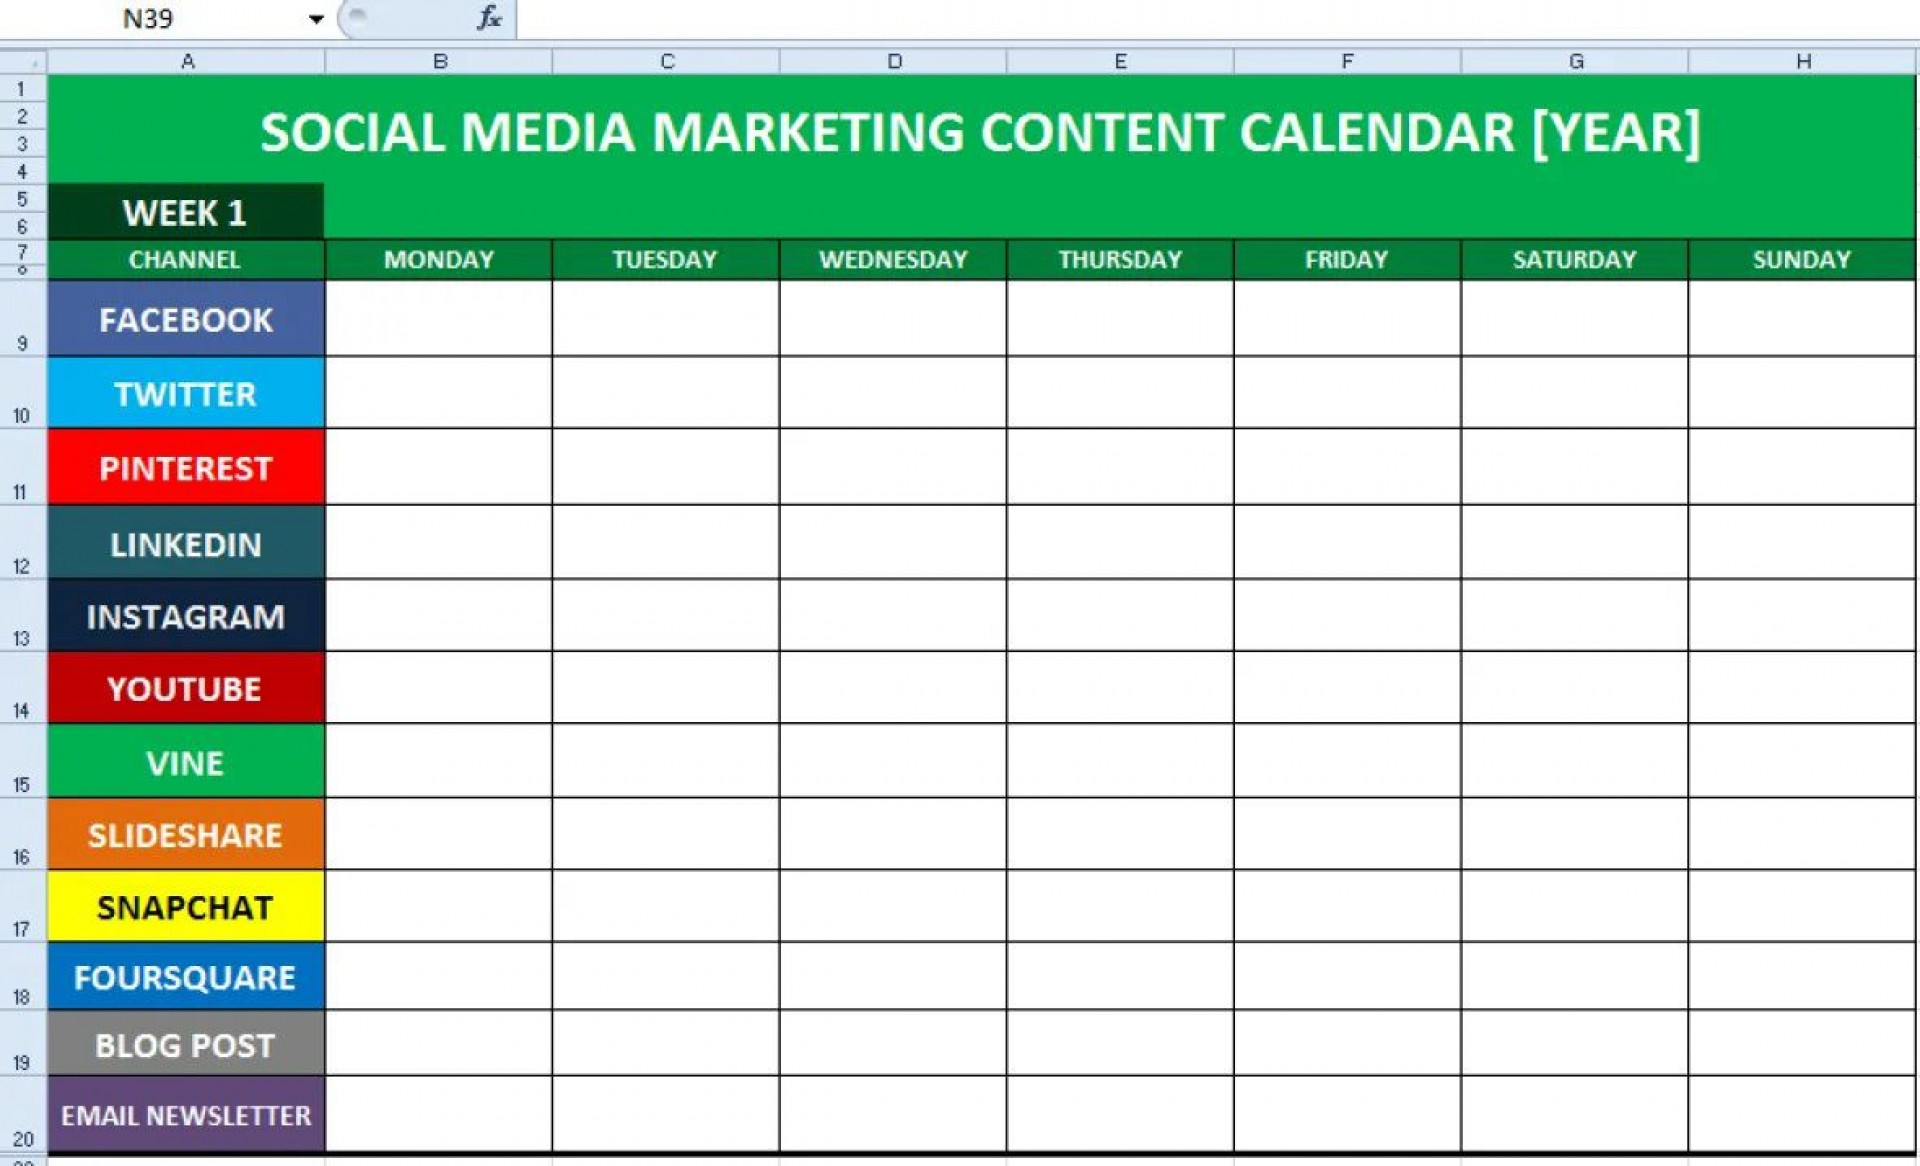 006 Formidable Social Media Calendar Template Photo  2020 Editorial Excel Free 2019 Download1920